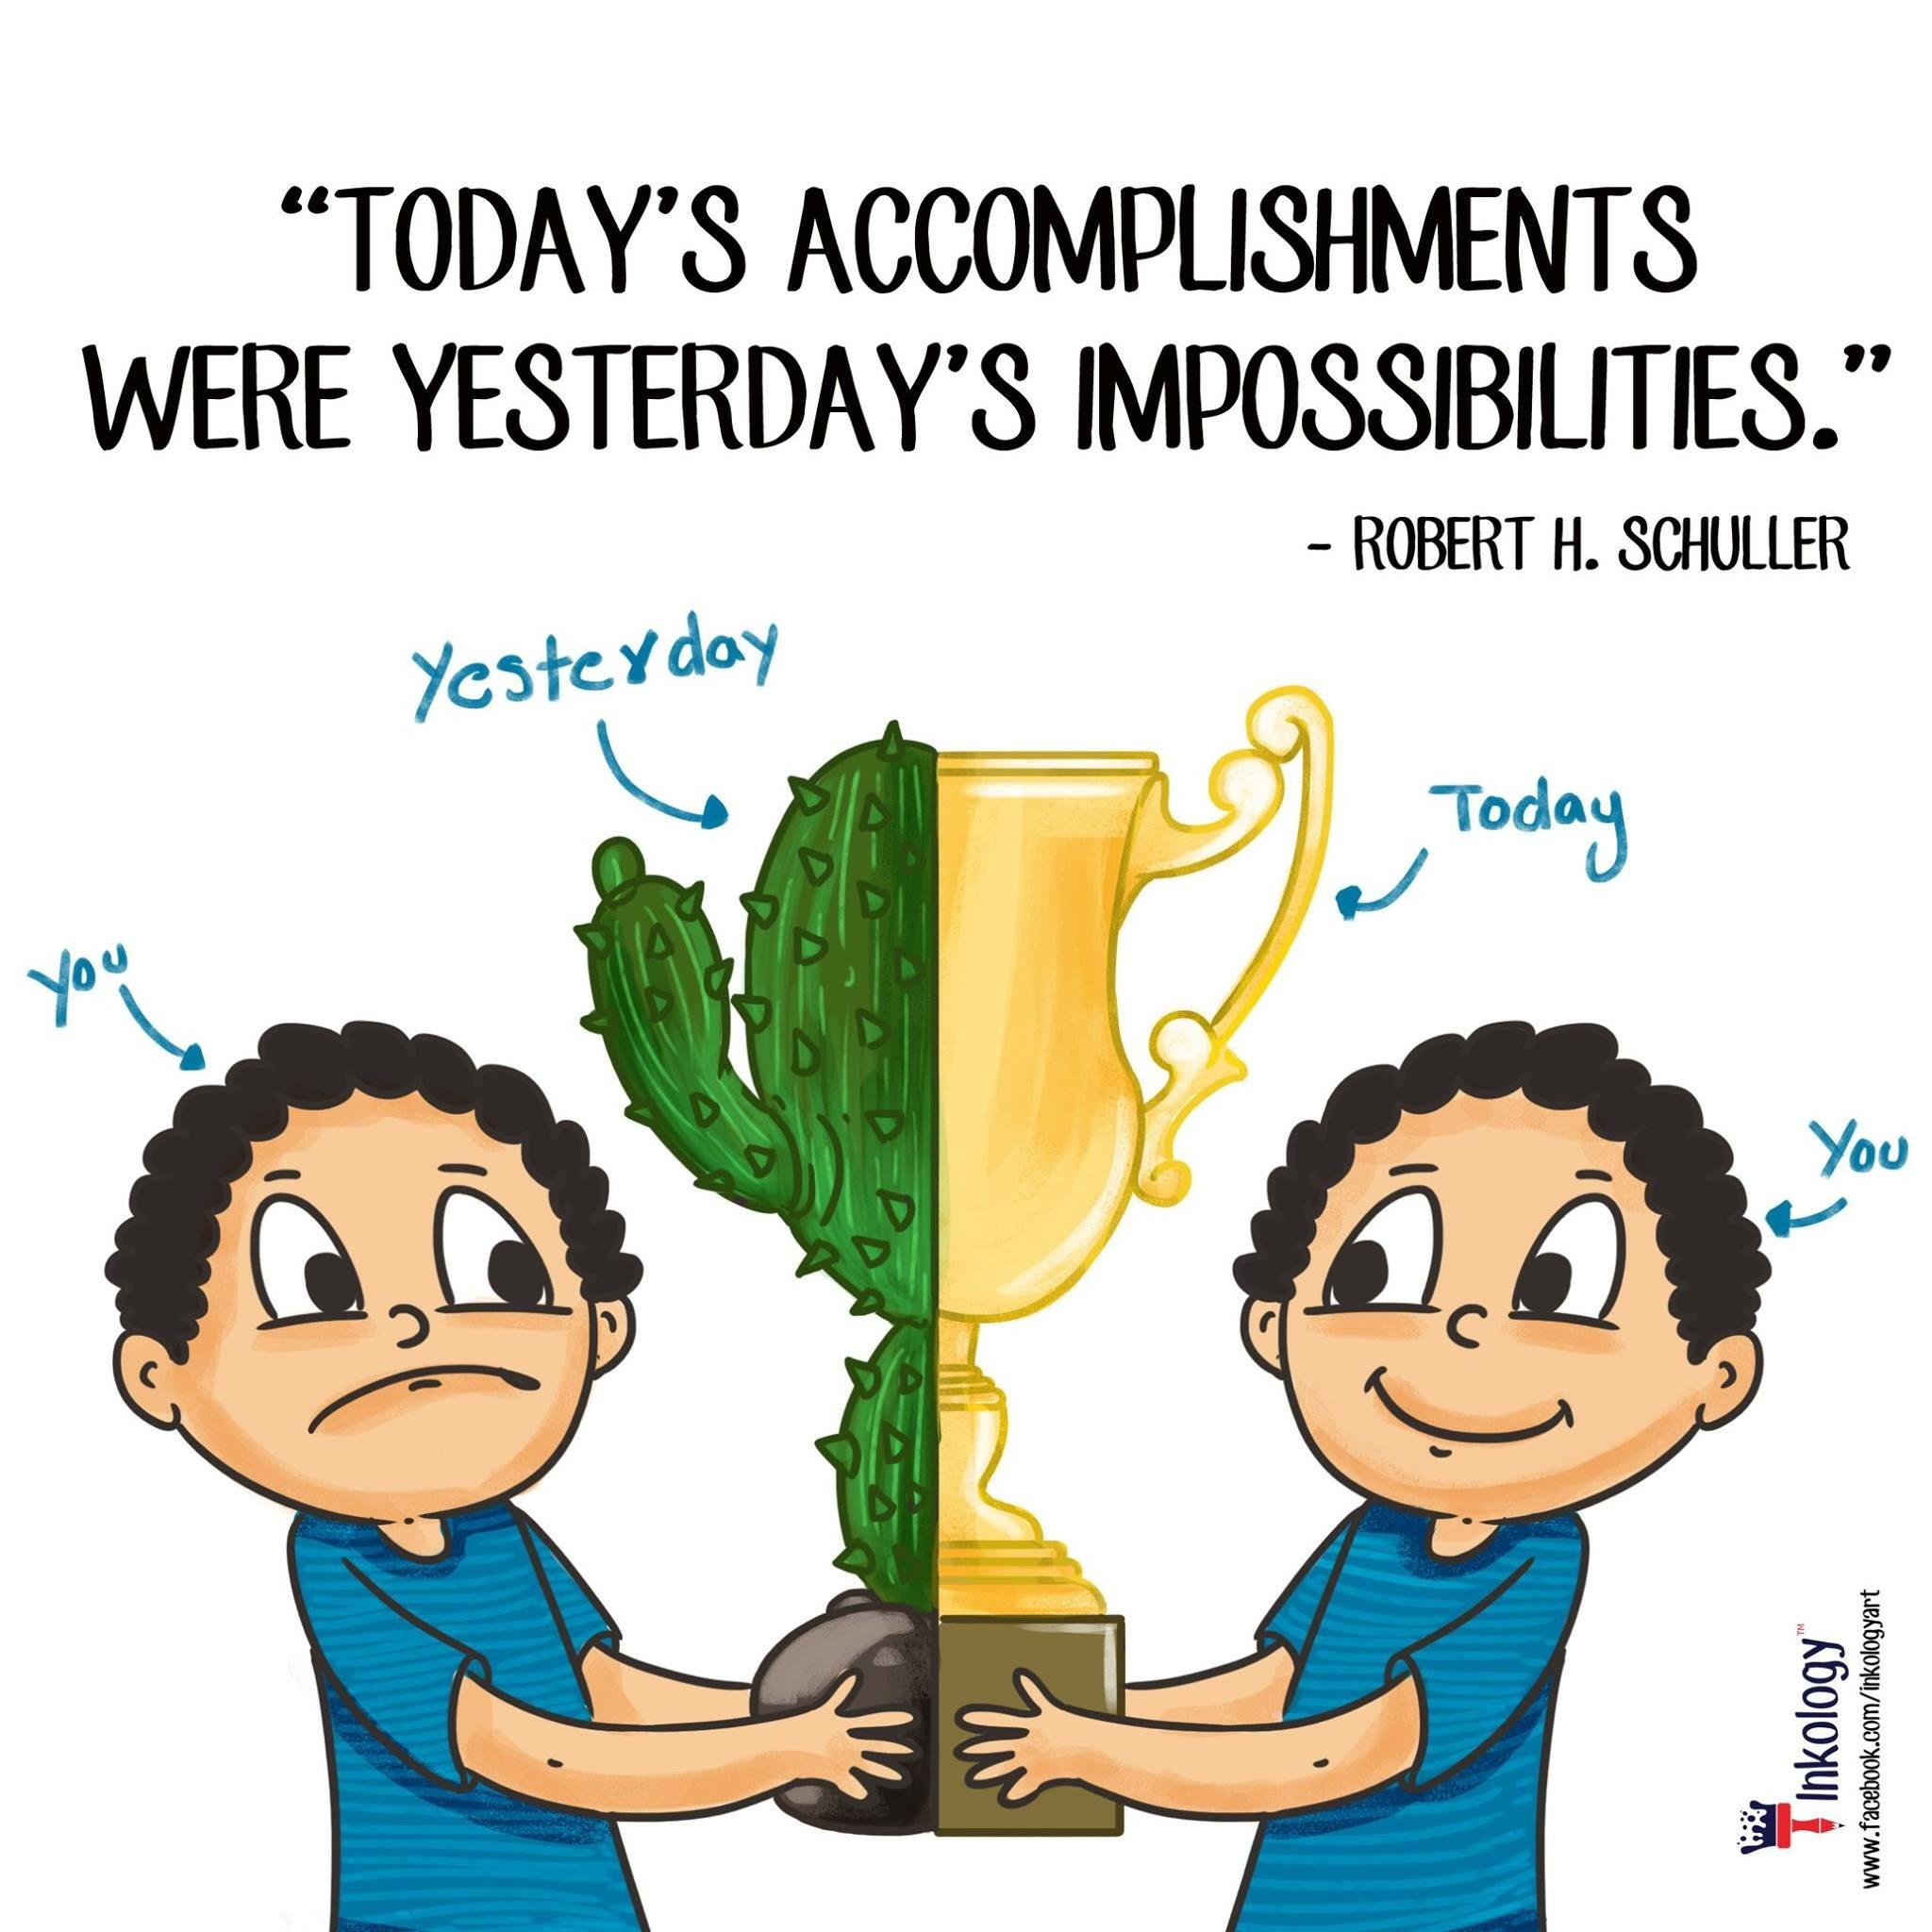 [Image] Today's accomplishments were yesterday's impossibilities.